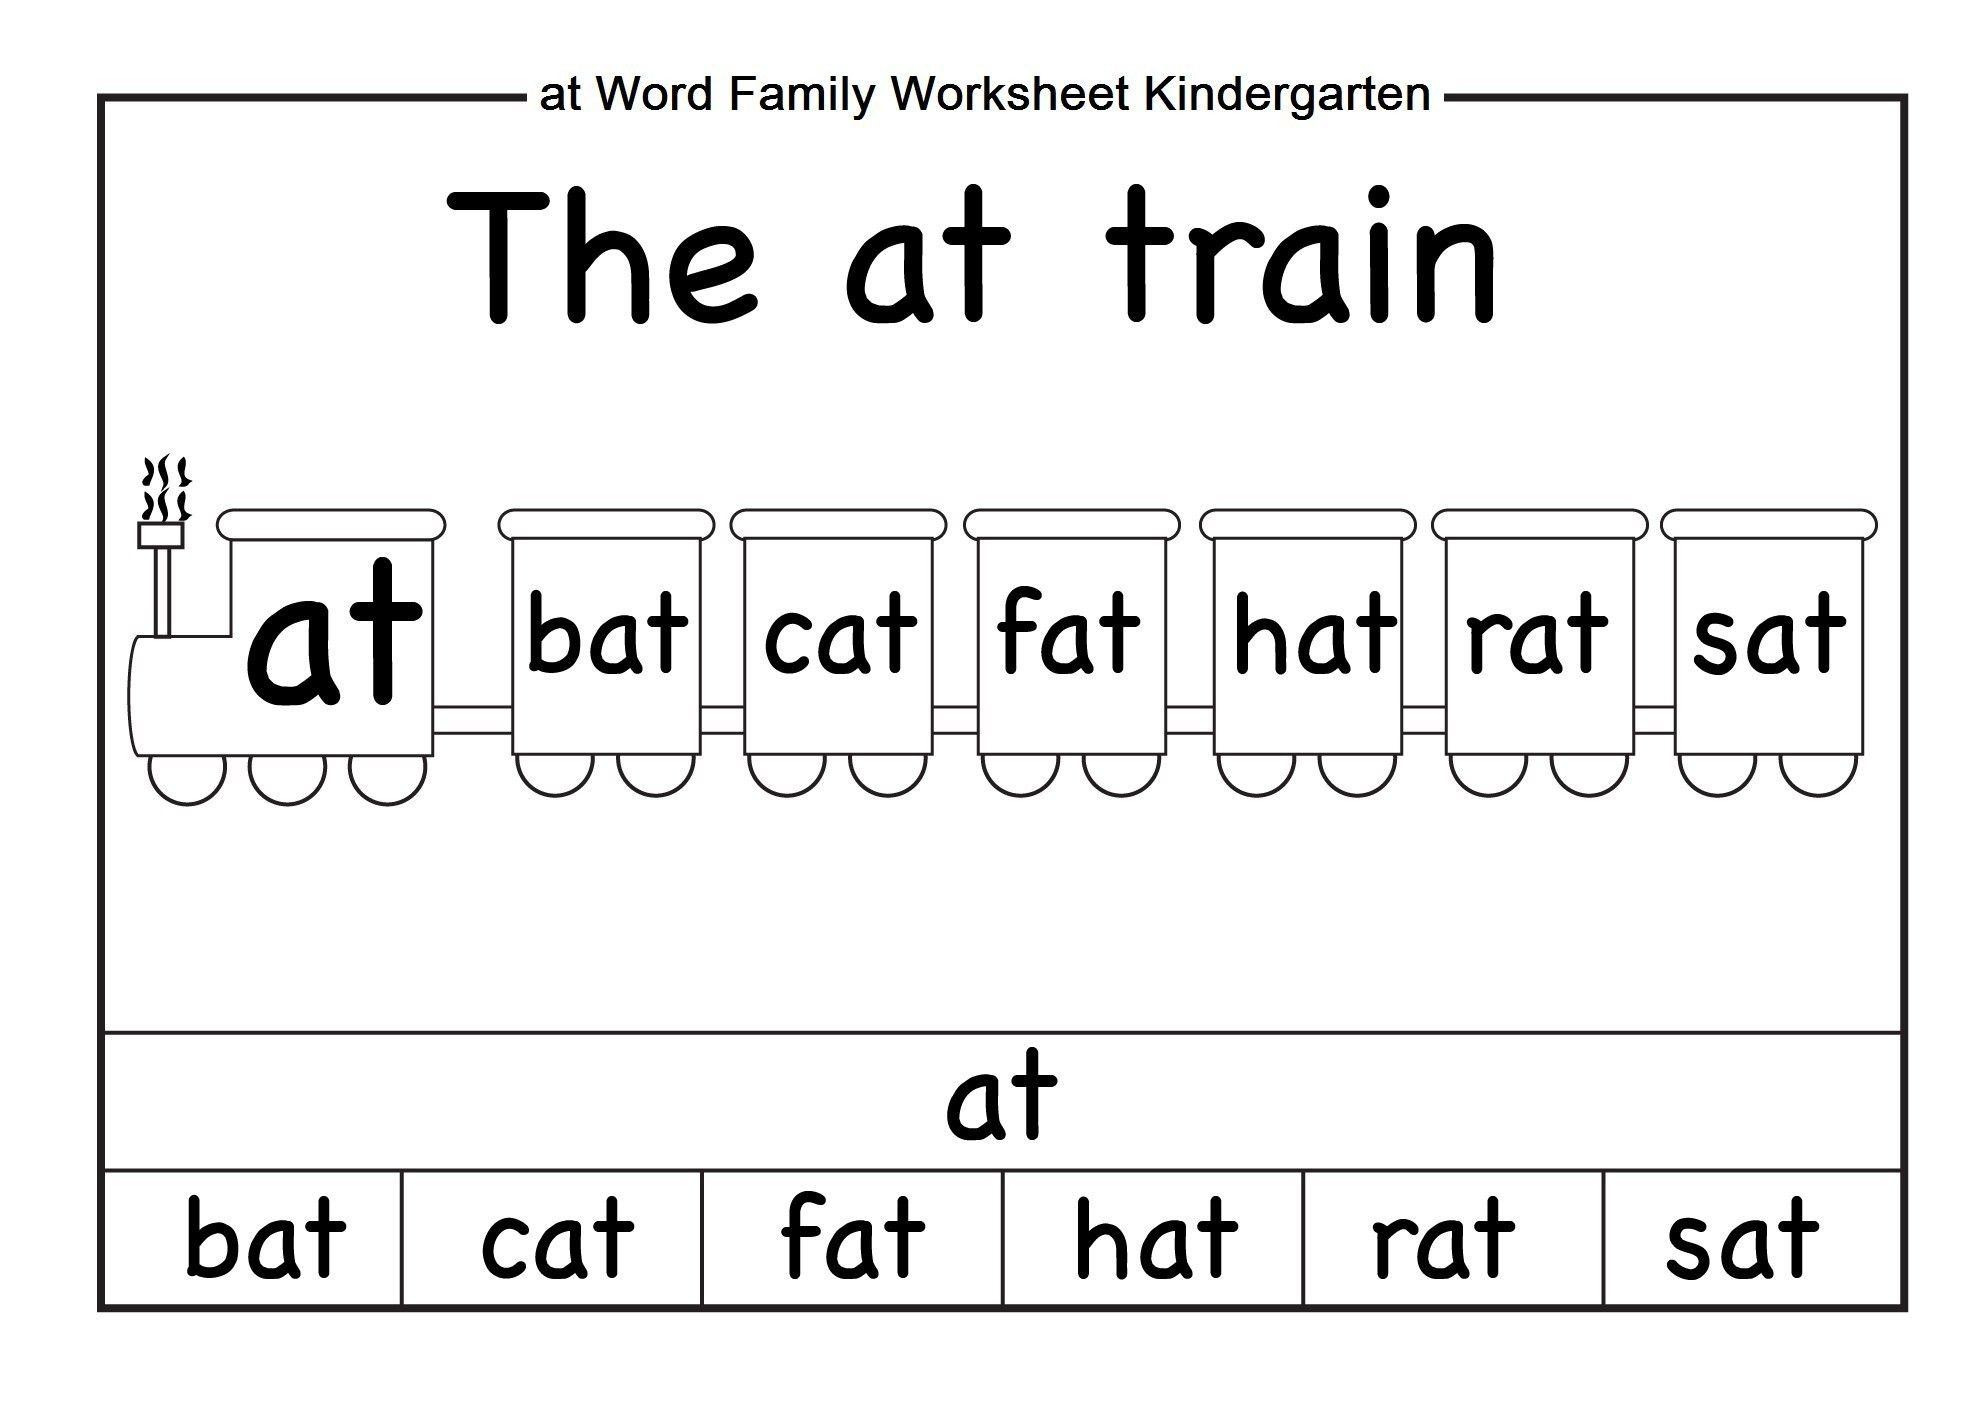 Word Family Worksheets Kindergarten | Briefencounters - Free Printable Word Family Worksheets For Kindergarten